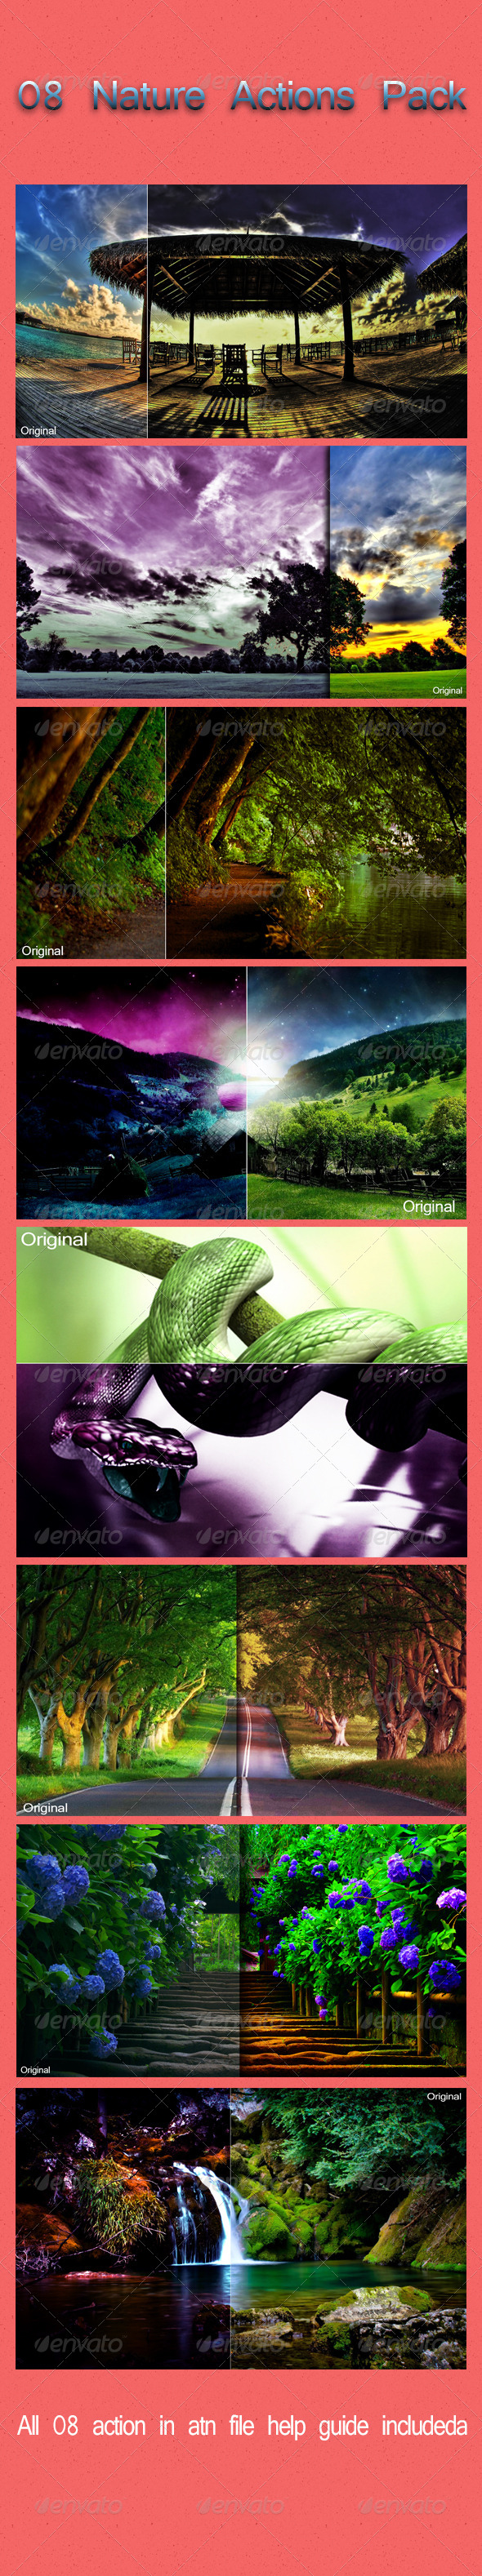 GraphicRiver 08 Nature Actions Pack 6419492